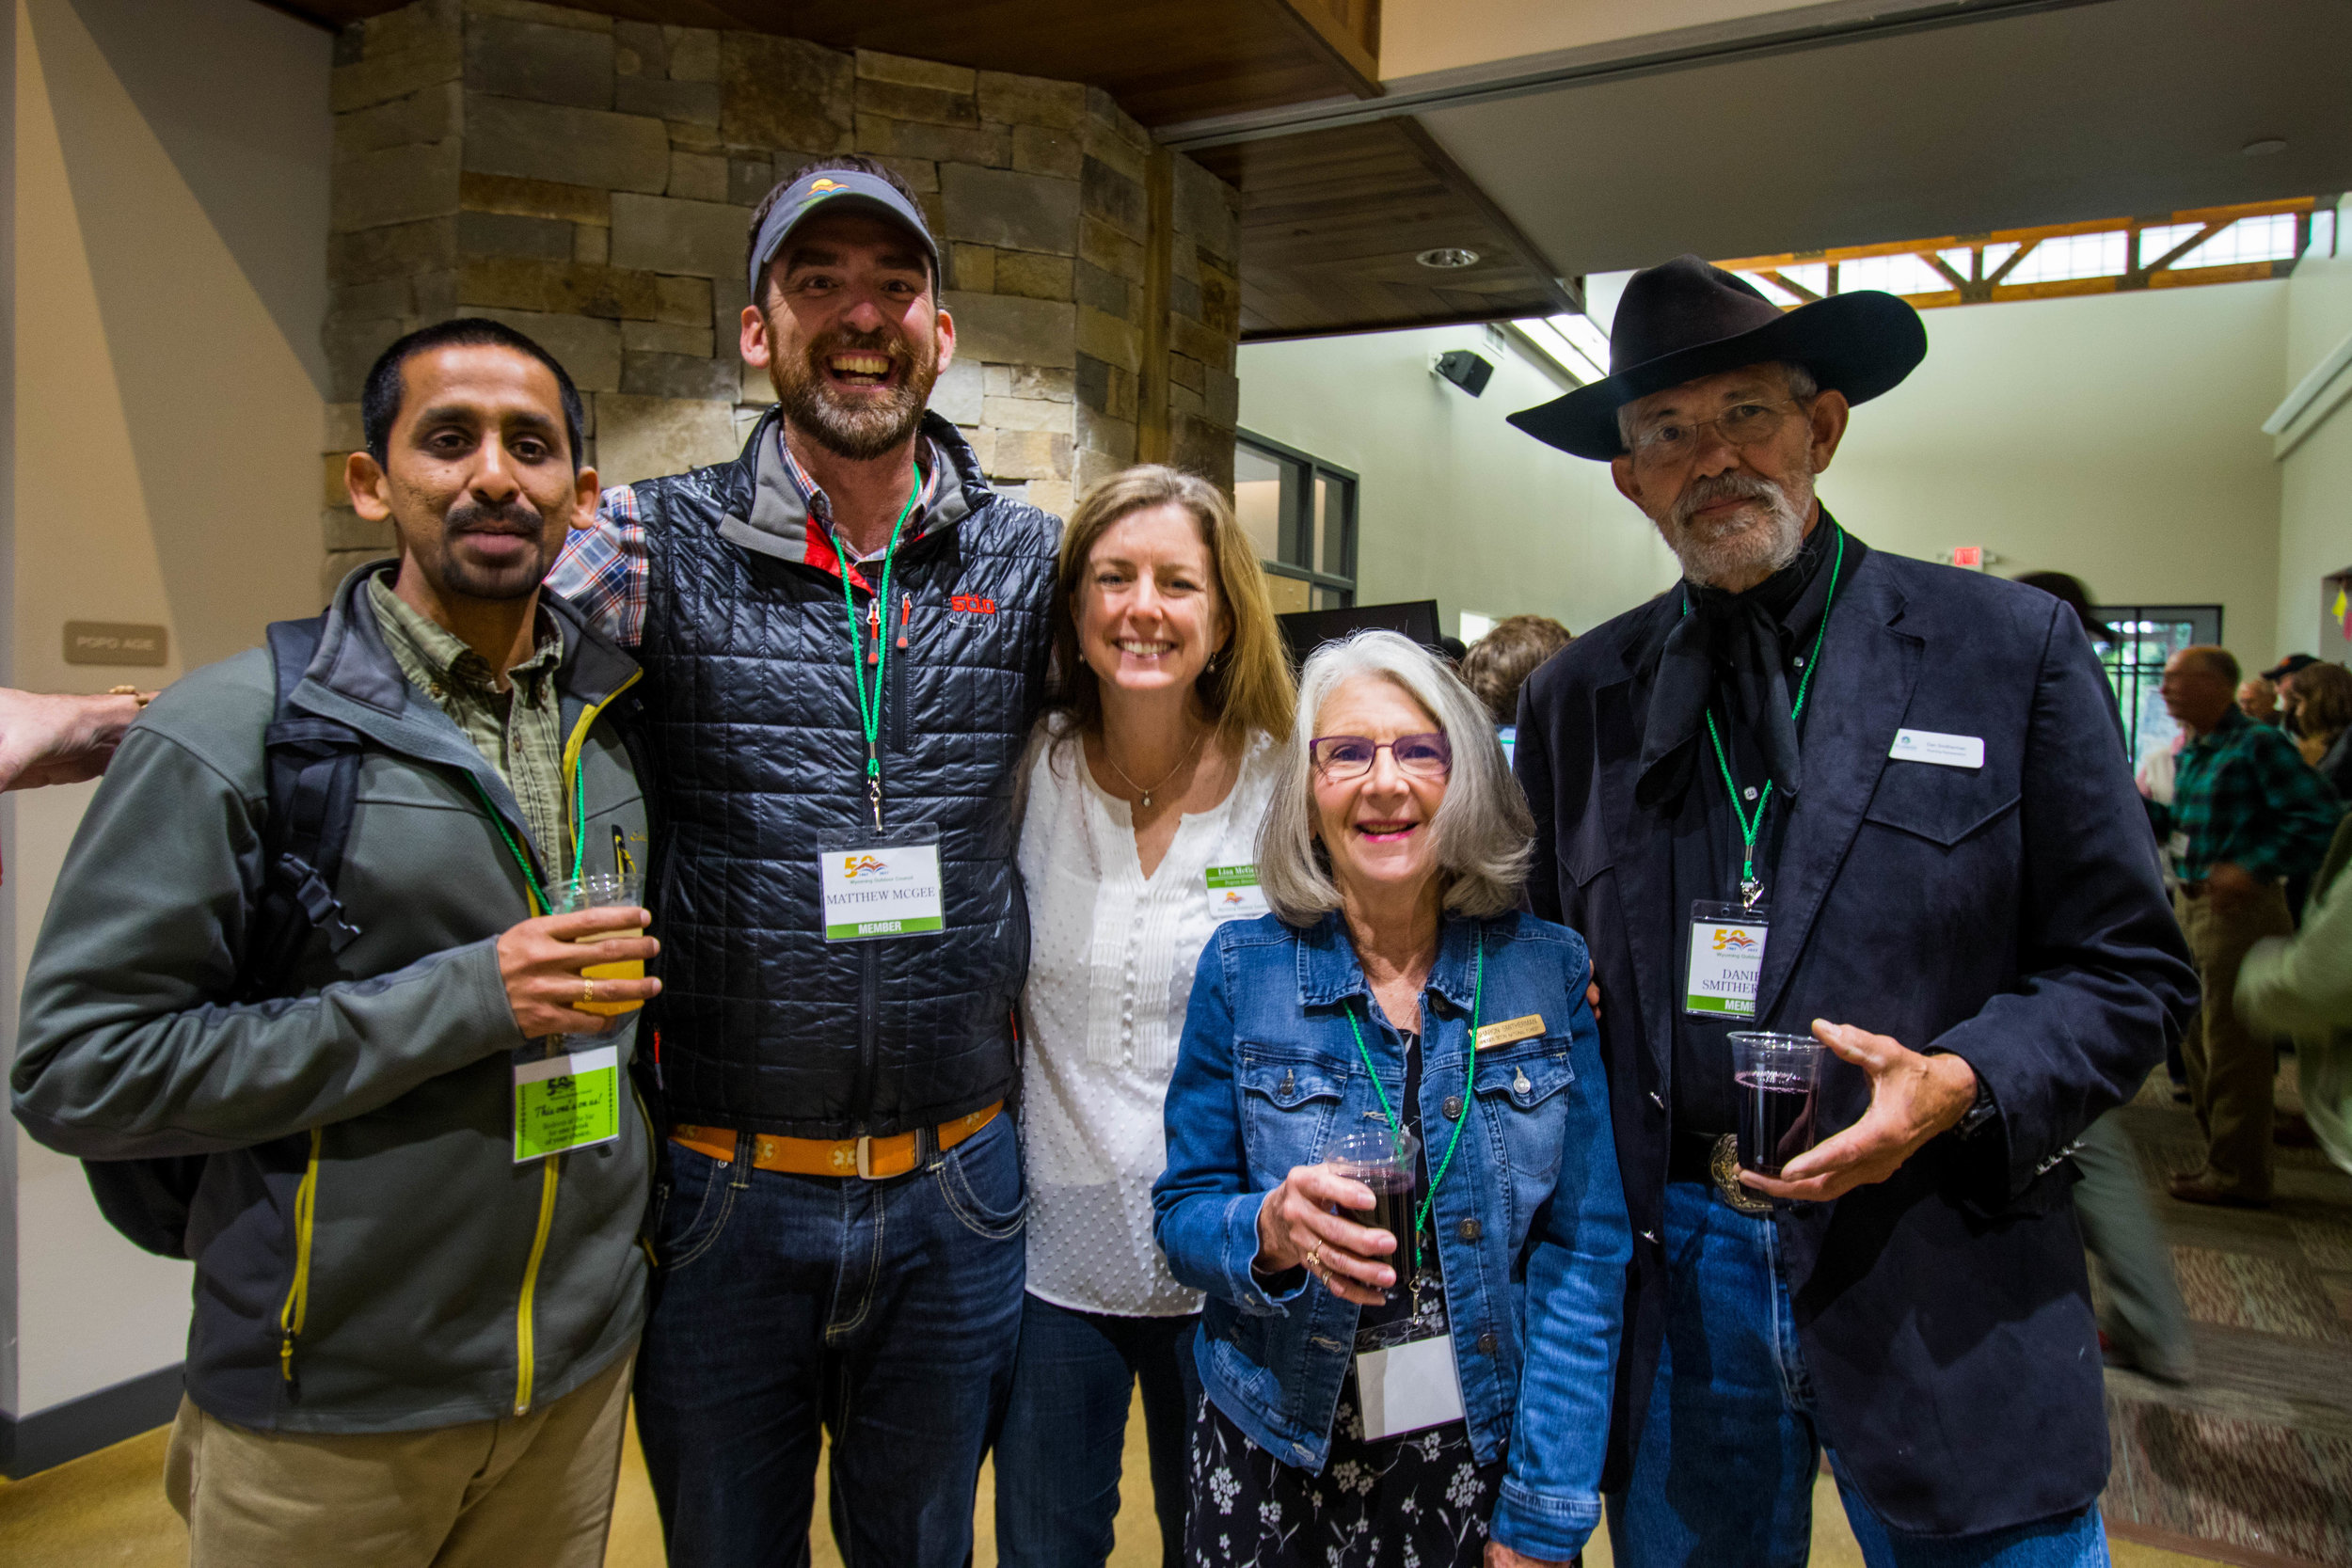 Siva Sundaresan (left), with colleagues at Wyoming Outdoor Council's 50th anniversary in Lander (WY) last weekend. Siva is working out of our new Lander office. Welcome to the team Siva! (Photo courtesy Claire Cella, Wyoming Outdoor Council.)